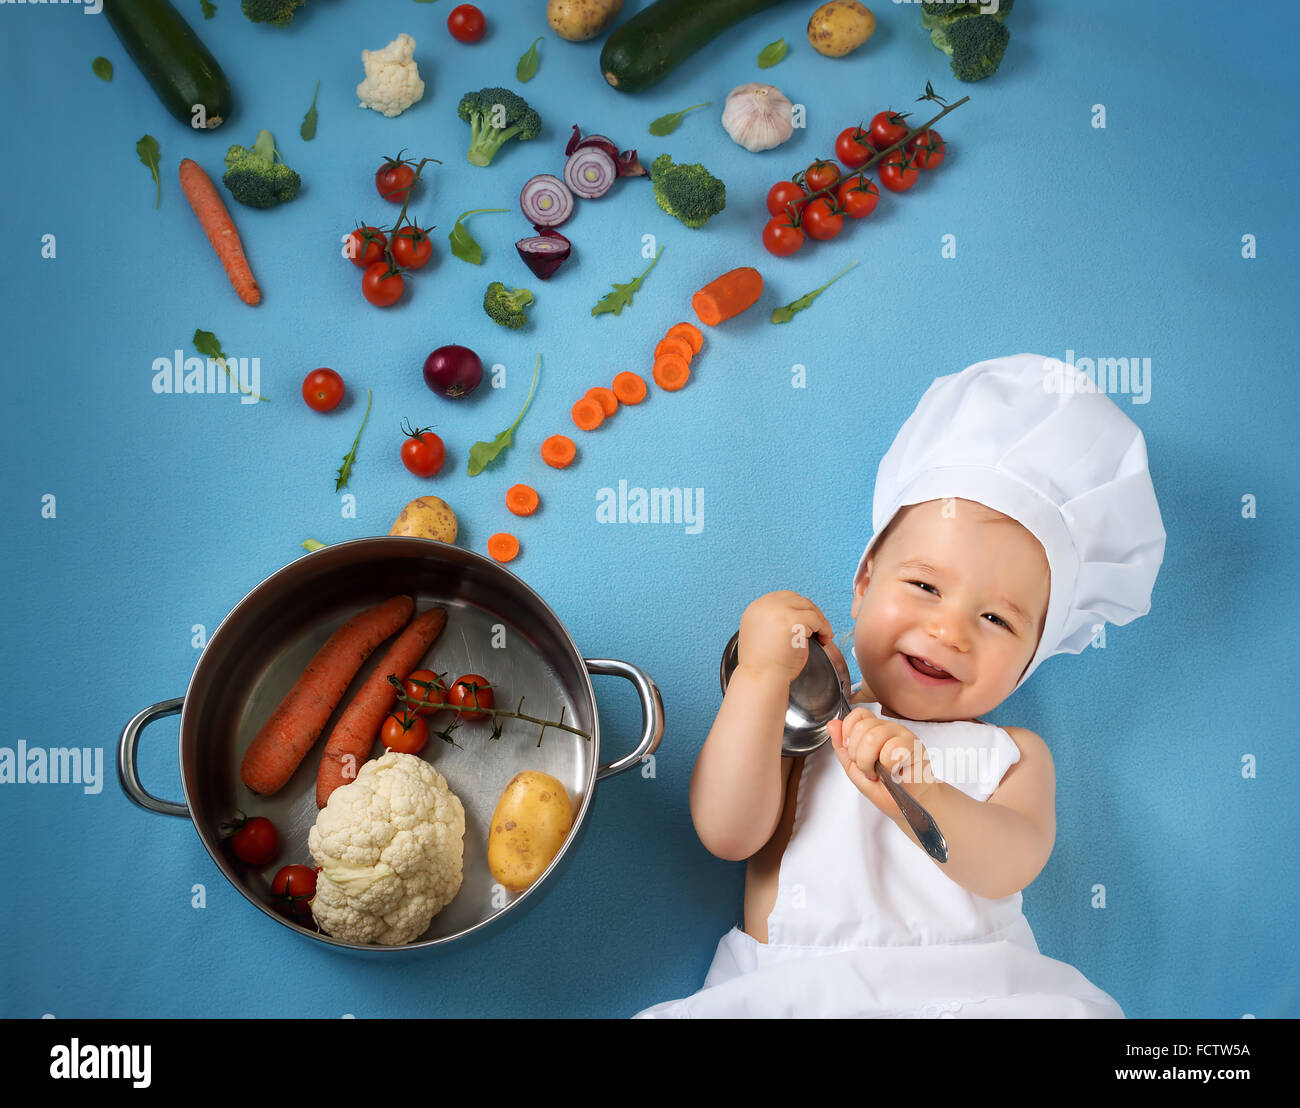 Baby boy in chef hat con recipiente di cottura e le verdure Immagini Stock